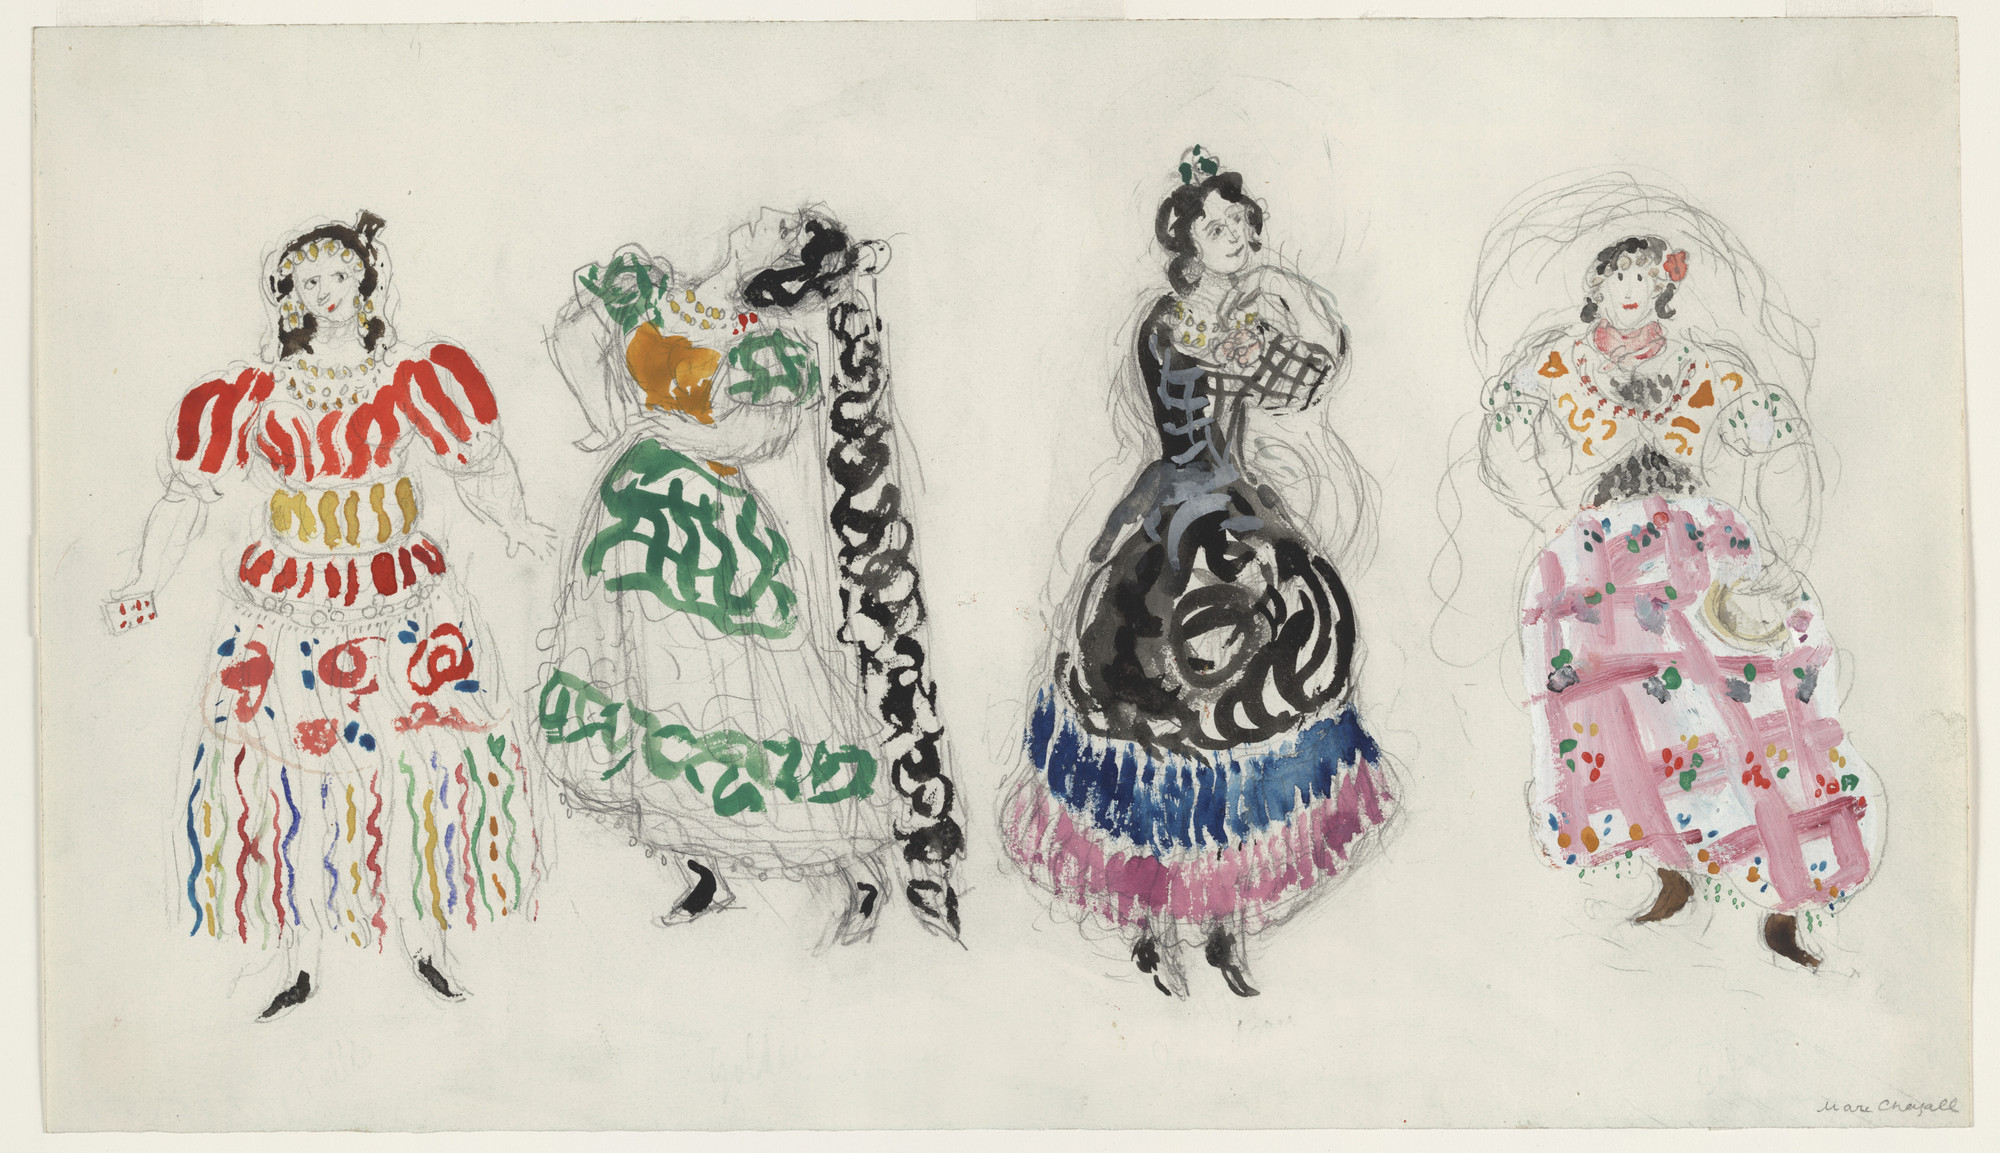 Marc Chagall. Gypsies. Costume design for Scene IV of the ballet Aleko. 1942